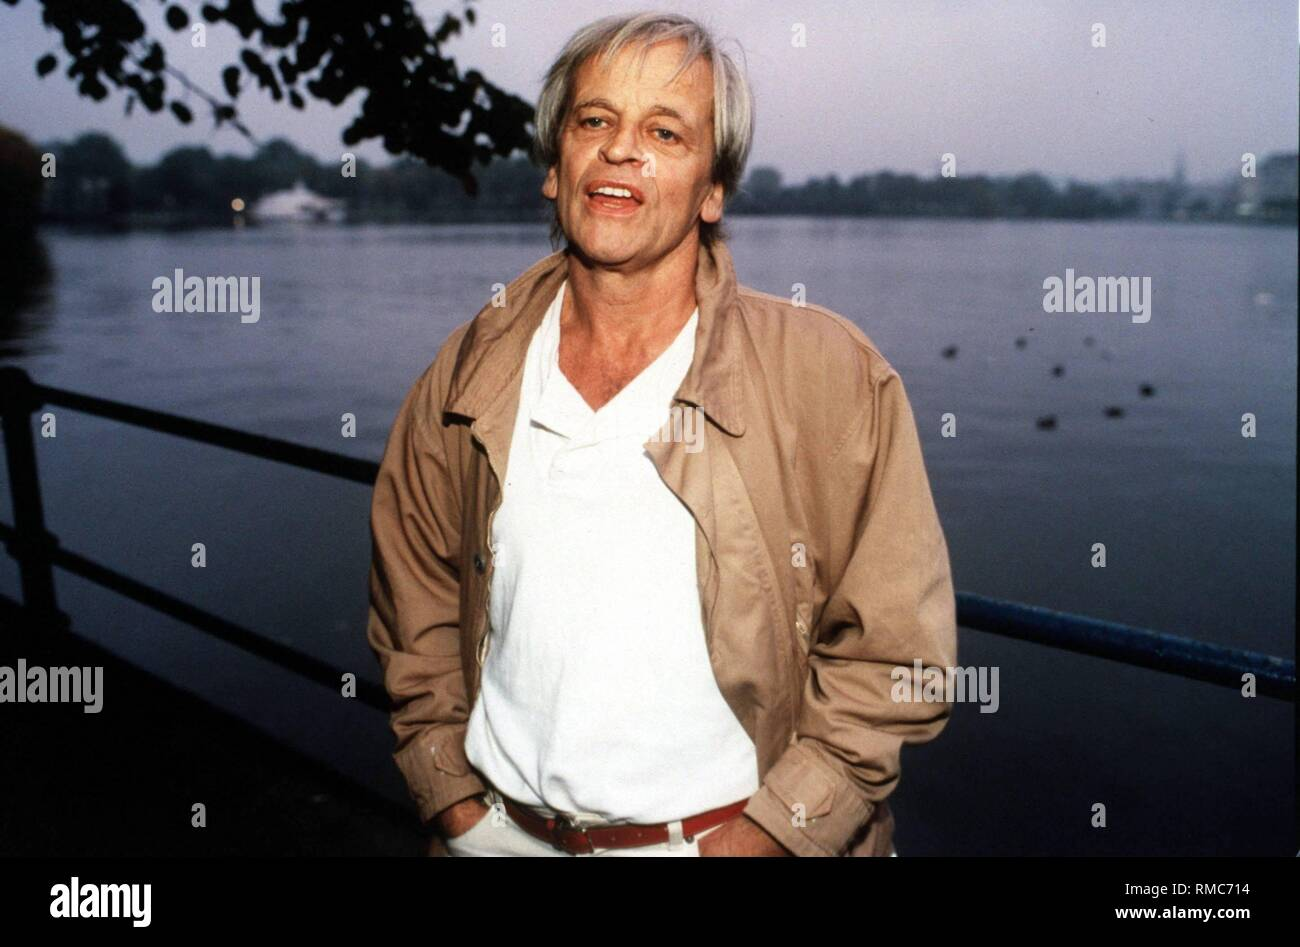 """On November 23, 2001 was the tenth anniversary of the death of actor Klaus Kinski (""""Fitzcarraldo"""", """"Nosferatu the Vampyre""""). The native Pole would have turned 75 this year. Stock Photo"""